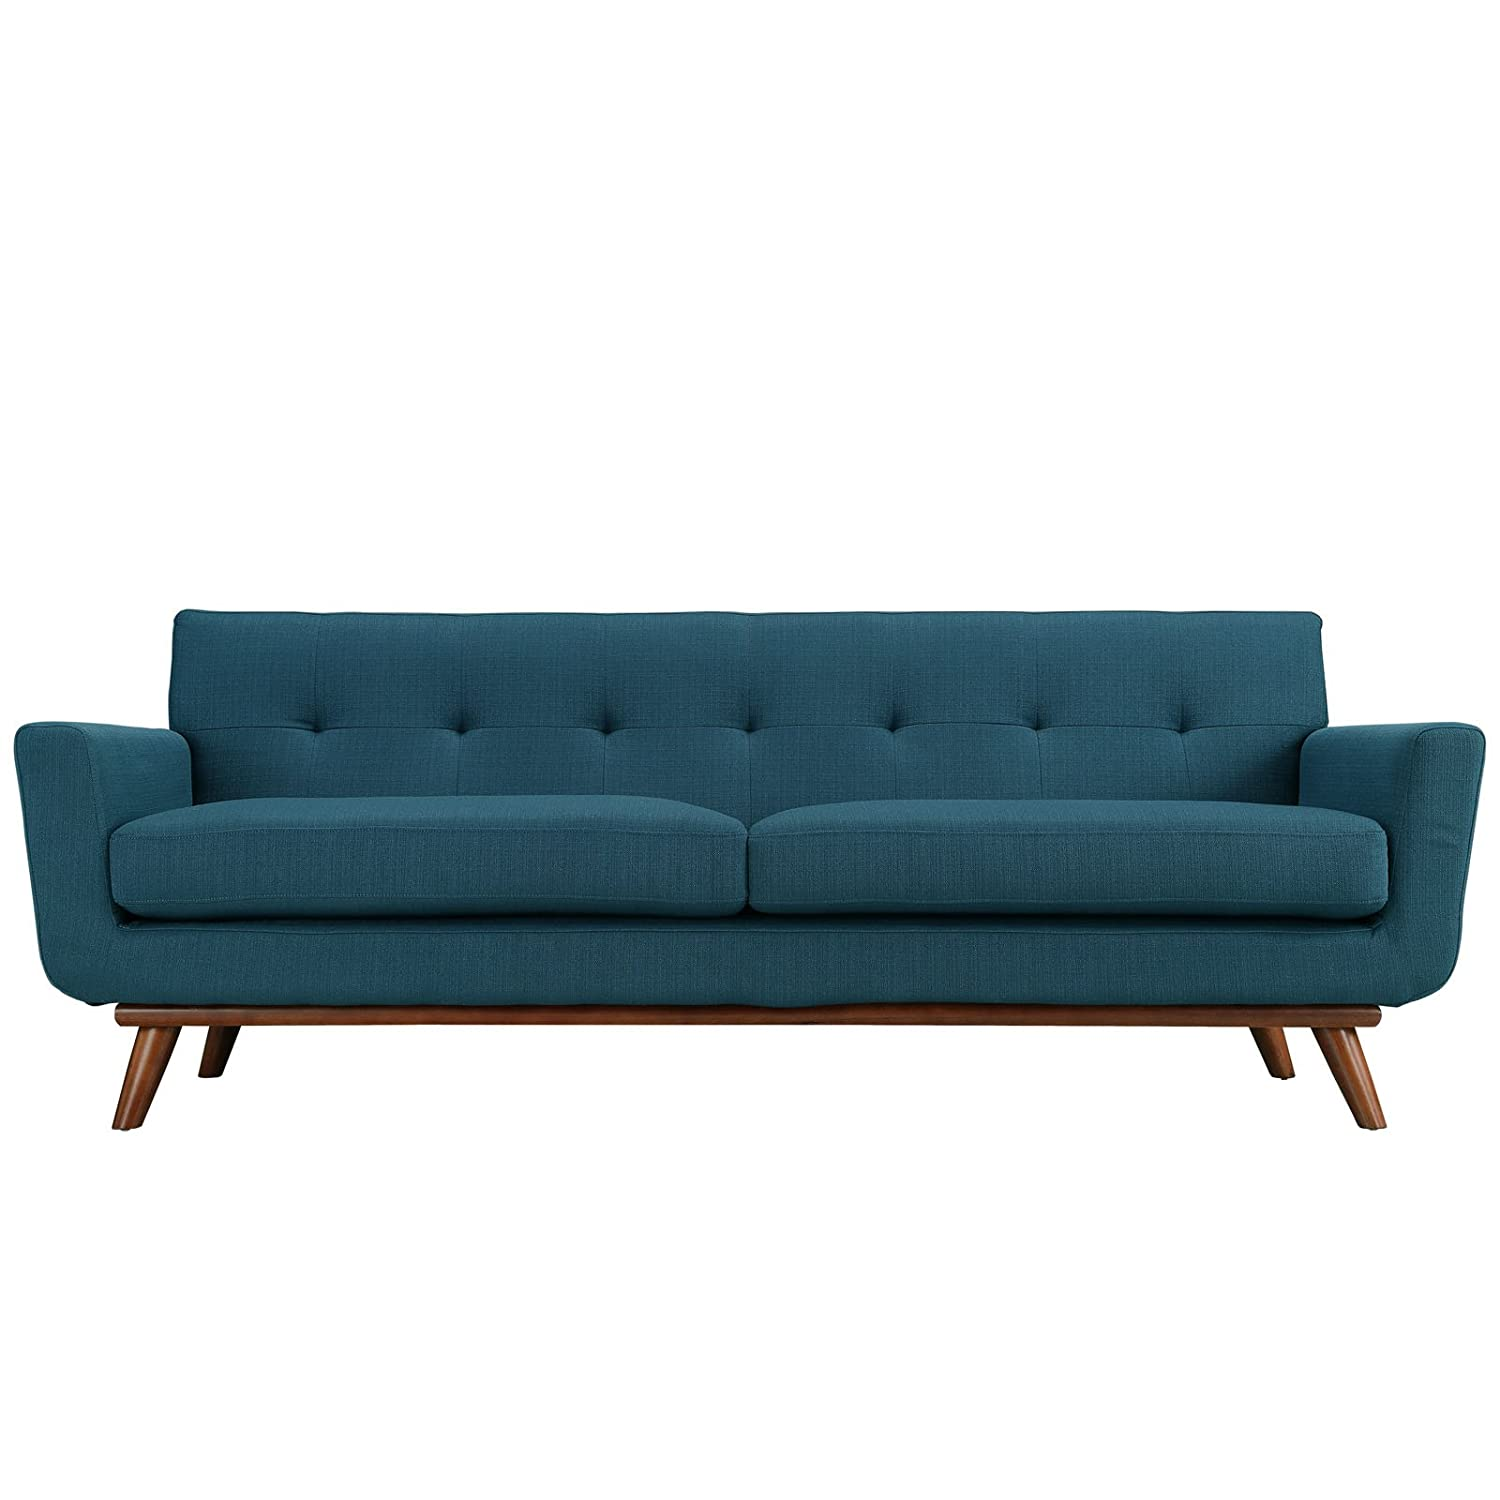 Amazon.com: Modway Engage Mid-Century Modern Upholstered Fabric Sofa ...